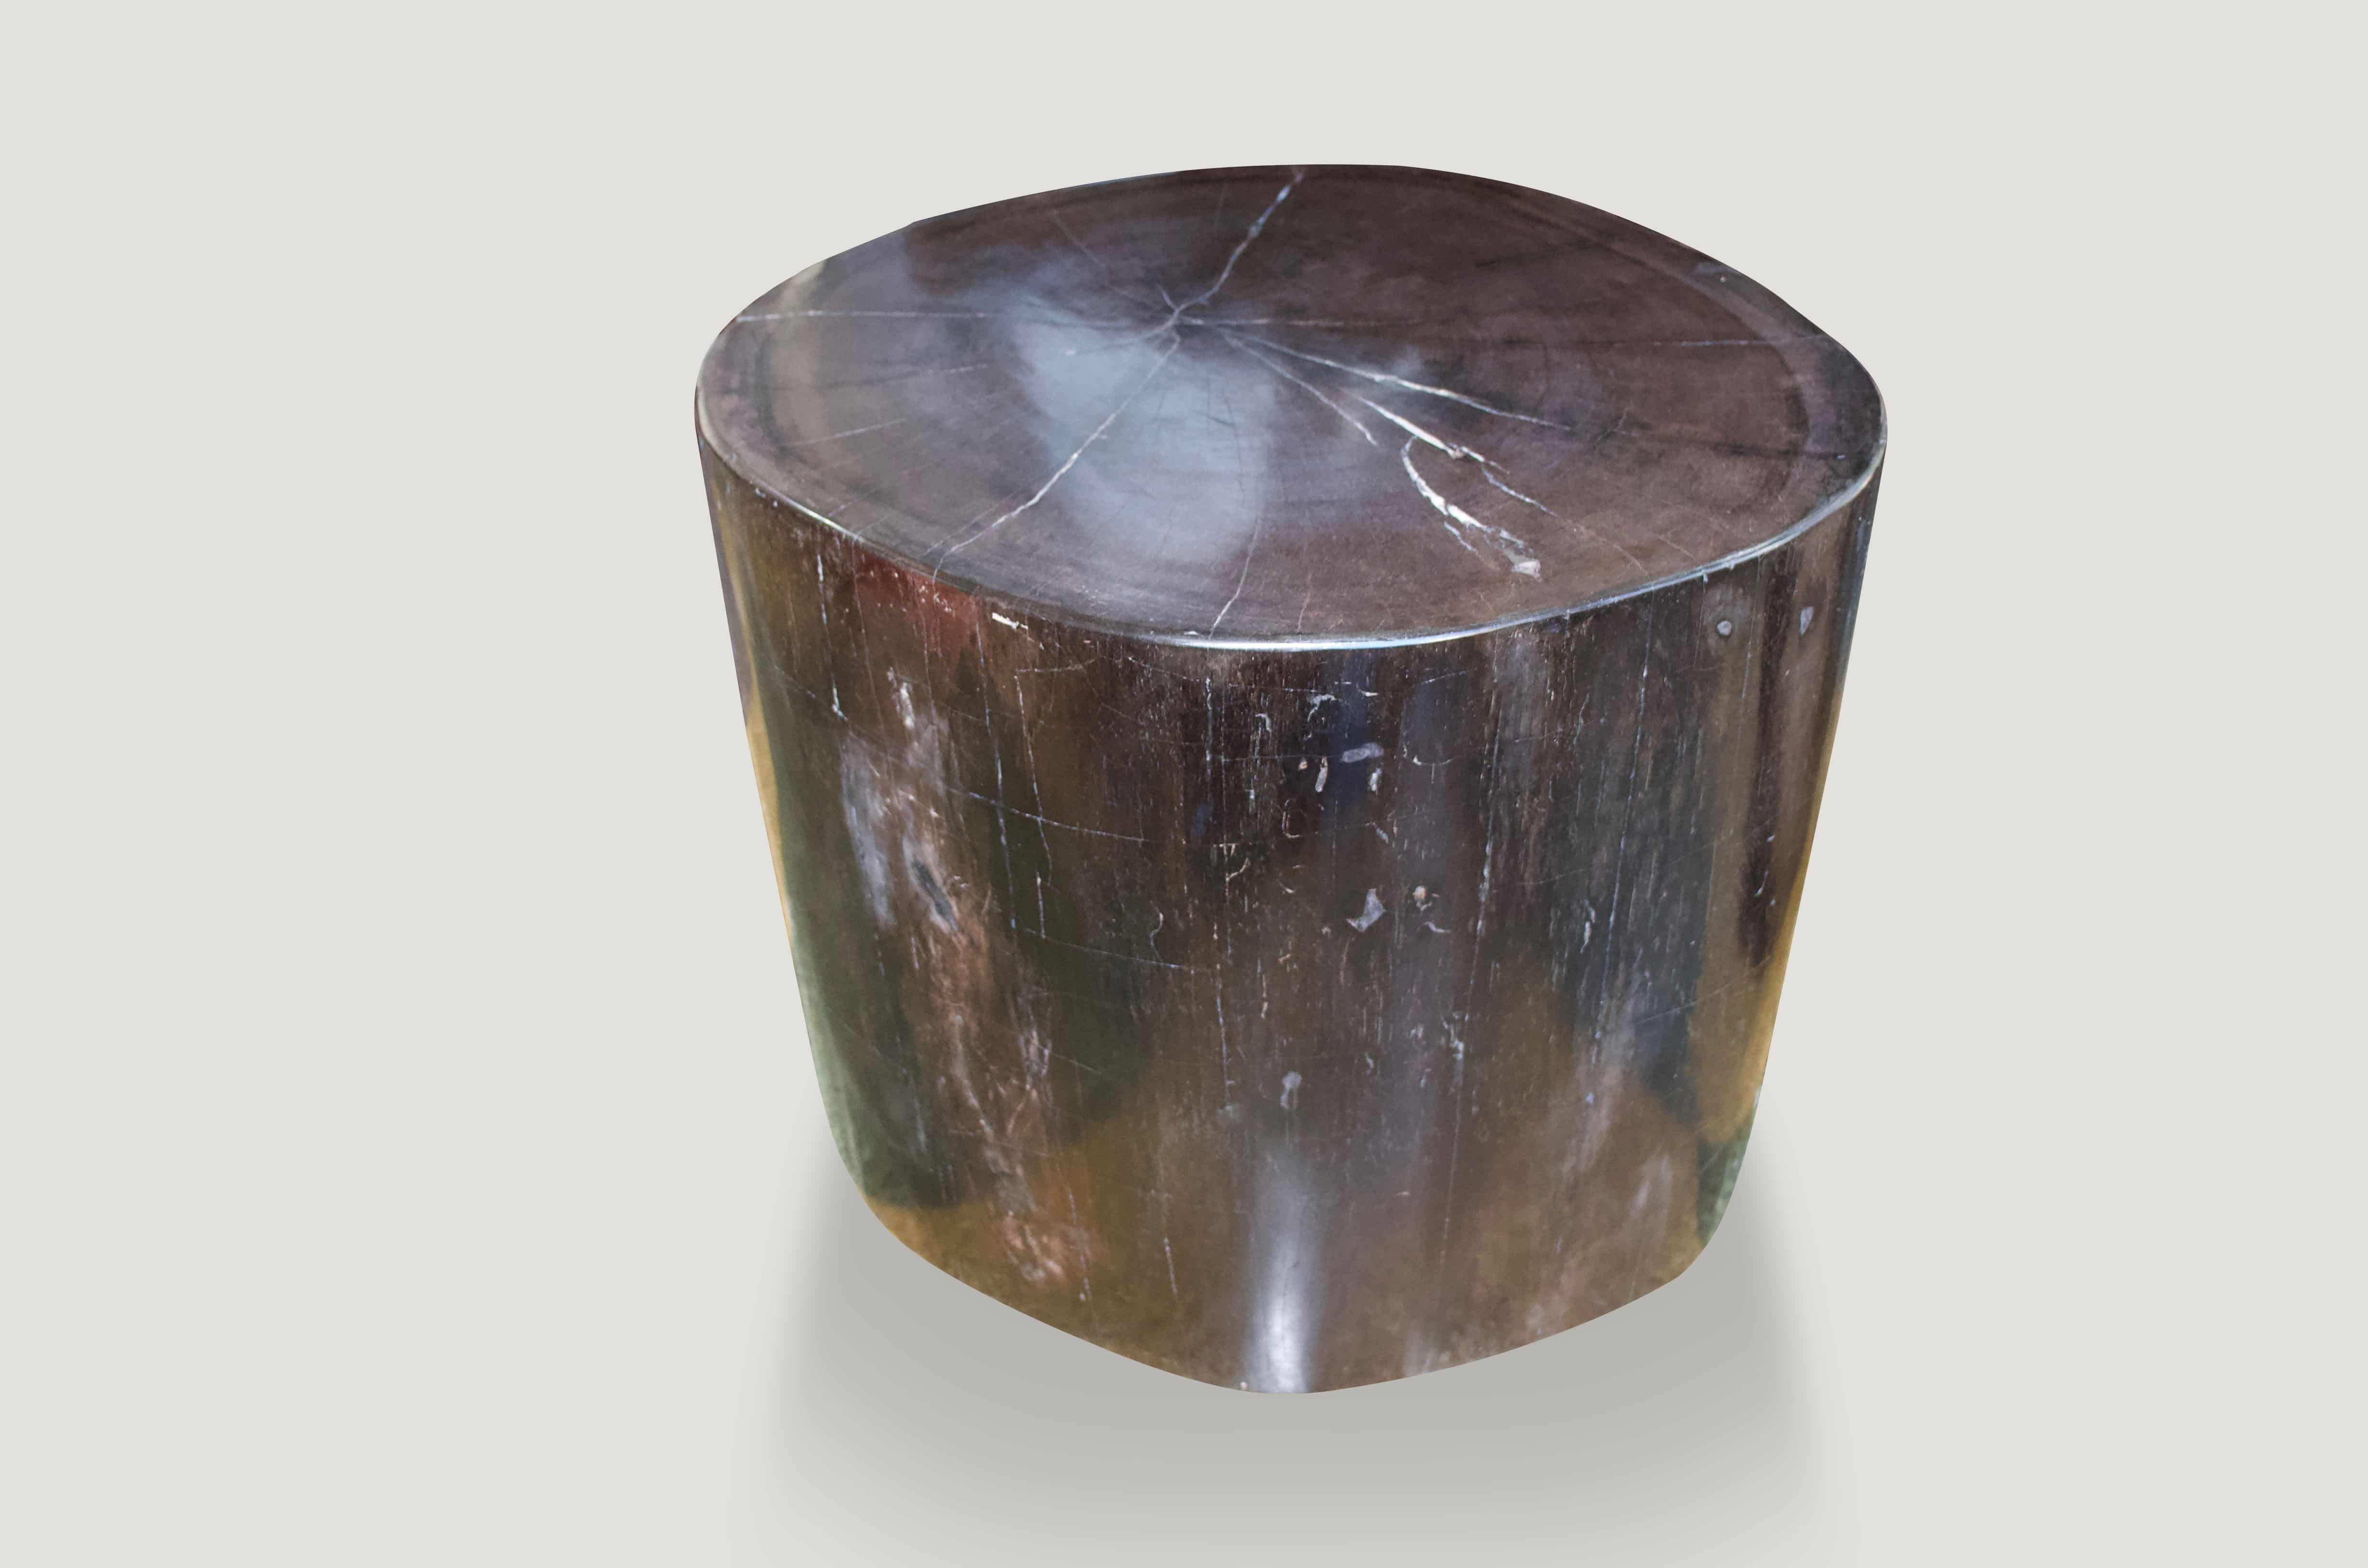 Super Smooth High Quality Petrified Wood Side Table 163KG - Andrianna  Shamaris